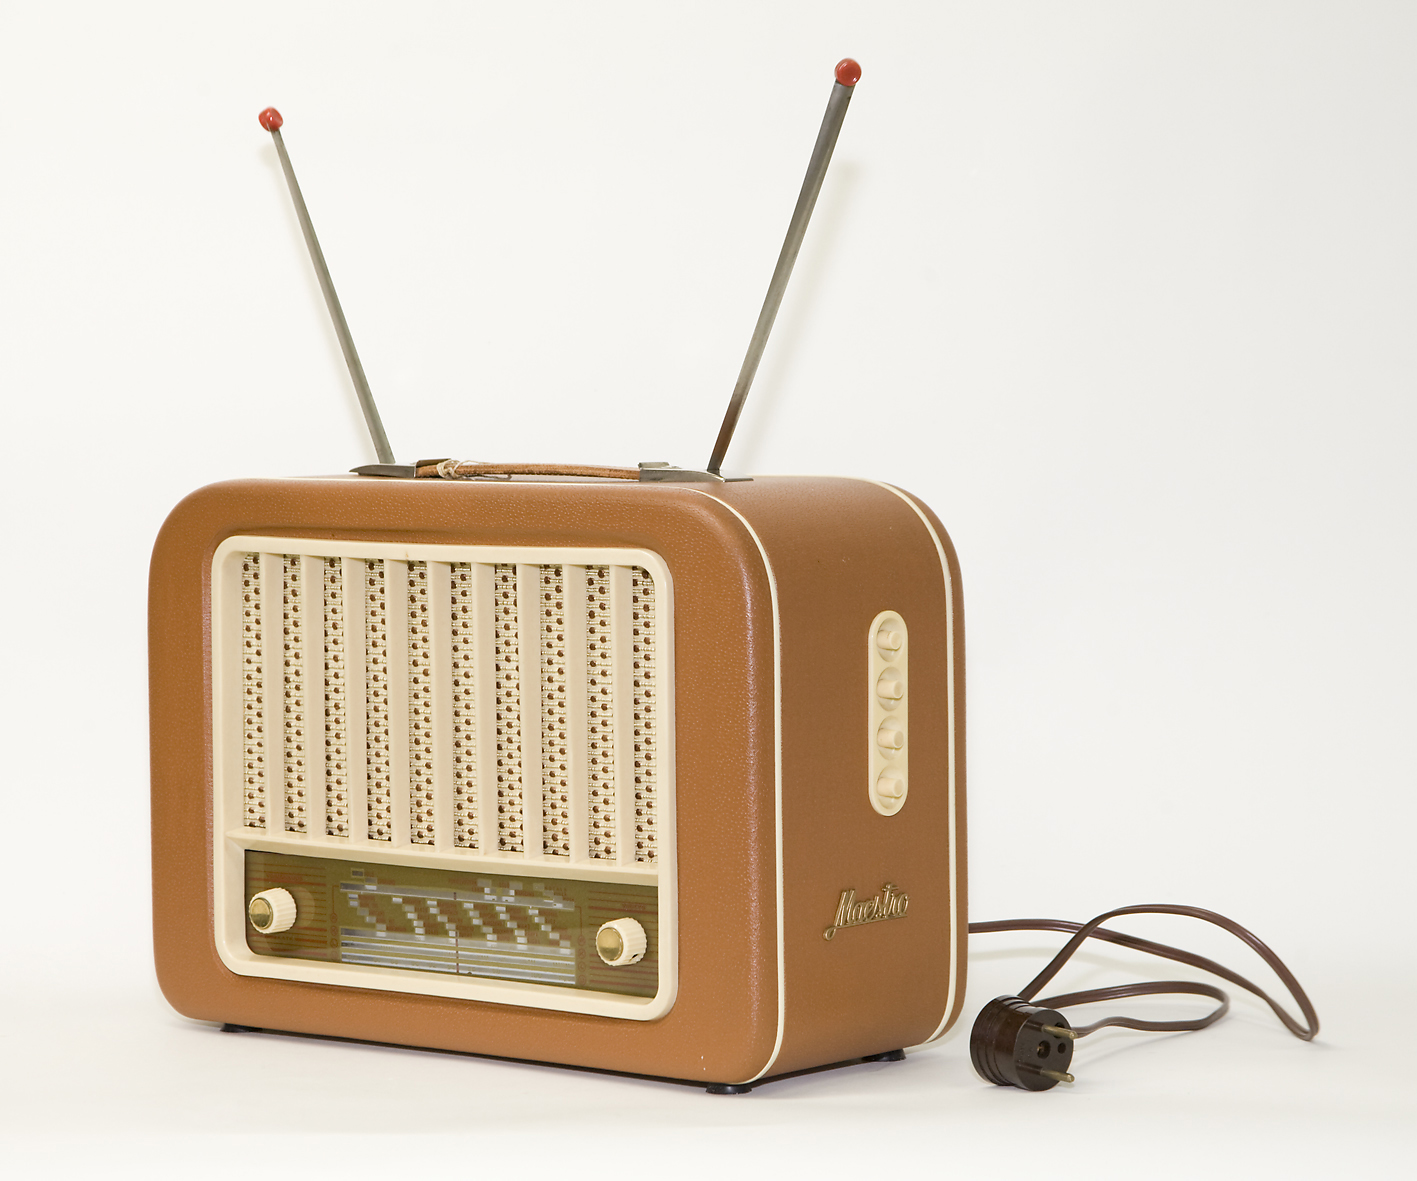 """ Radio, Maestro 842M, ASA Radio Oy, 1950, Turku. Tampereen museot. Kuva Marika Tamminen, Vapriikin kuva-arkisto. ""  by   Museokeskus Vapriikki     is licensed under   CC BY 2.0 ."